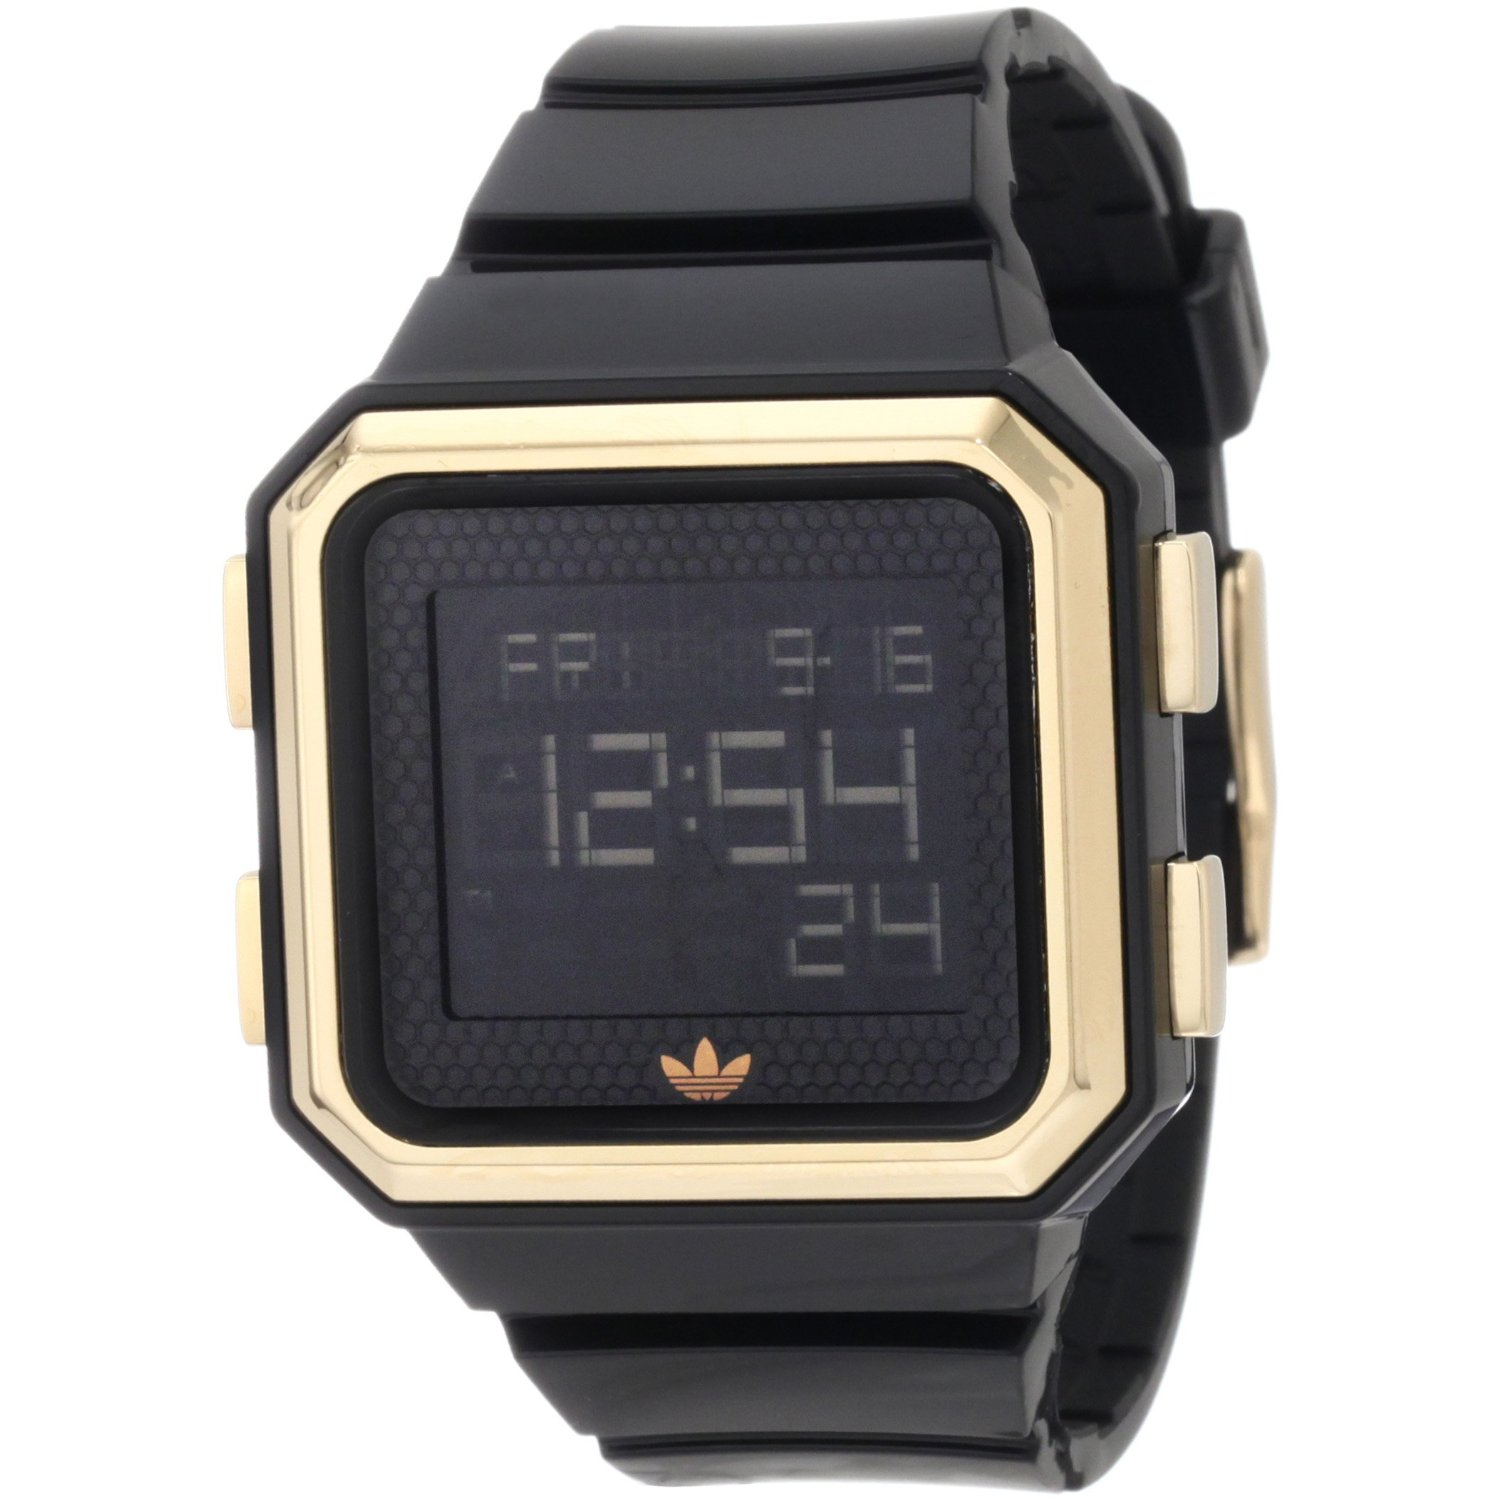 Adidas Watches Digital